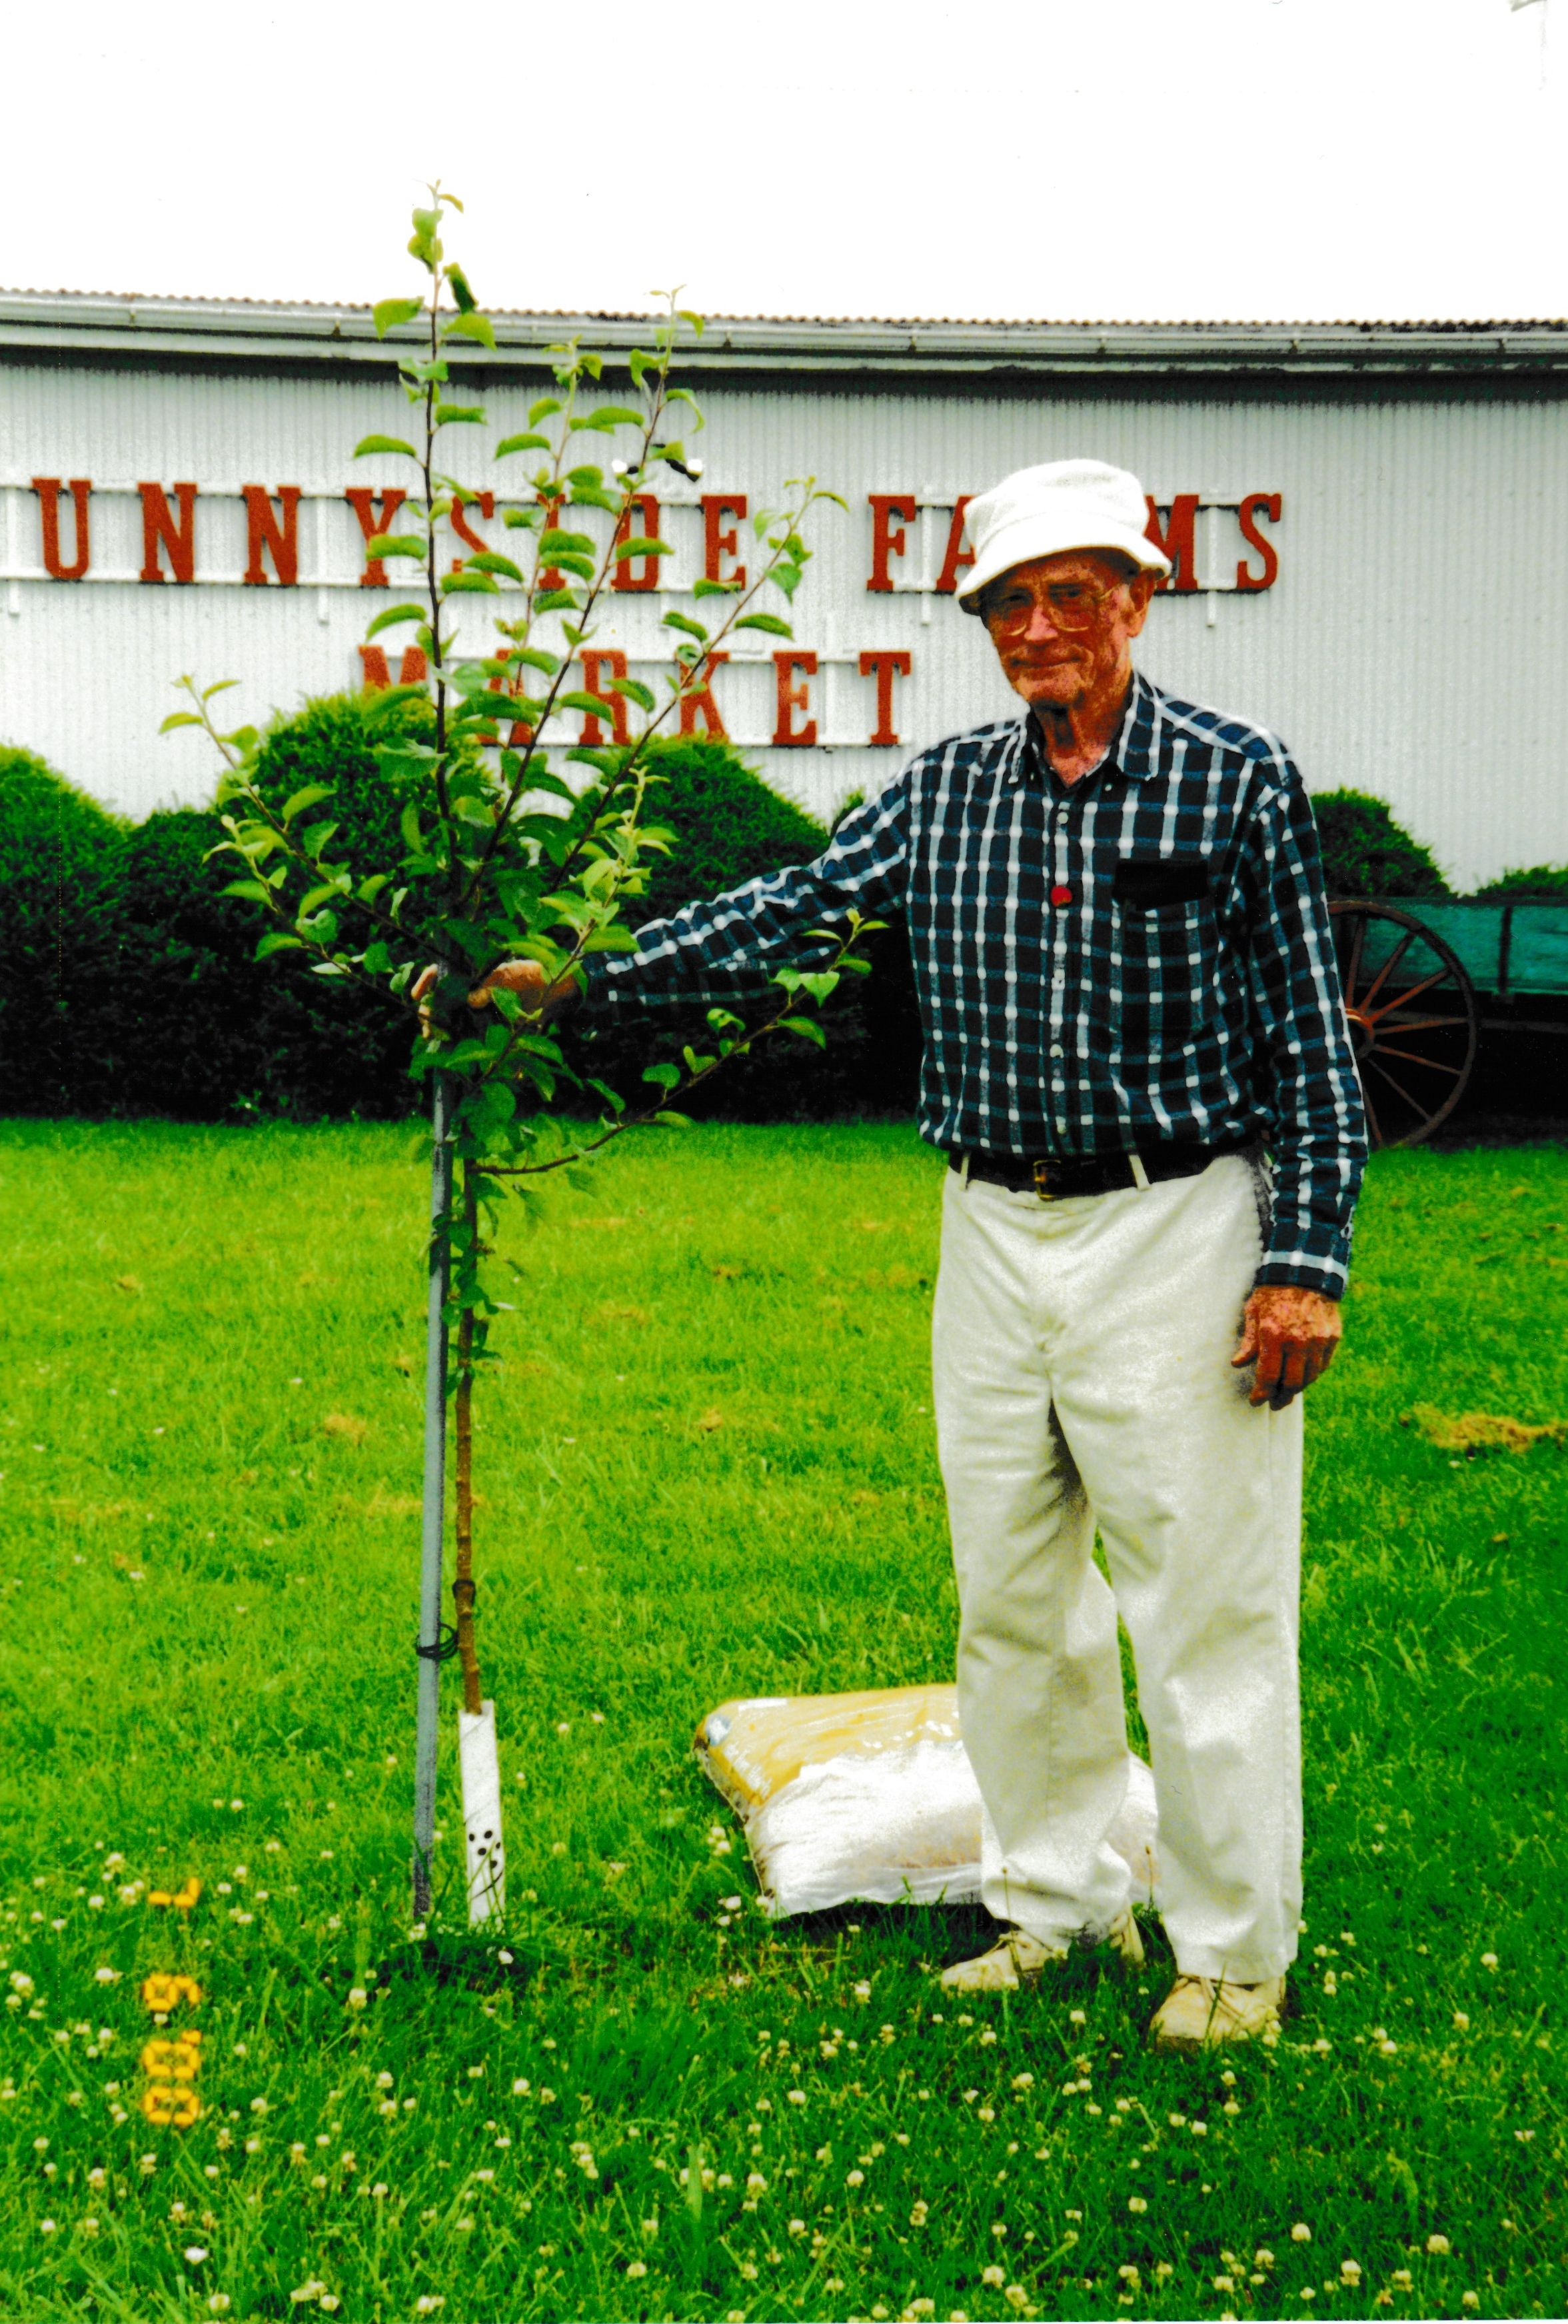 John lewis barney salisbury 1915 2006 find a grave memorial john lewis barney salisbury with his johnny appleseed tree he was so very proud to have gotten this seedling izmirmasajfo